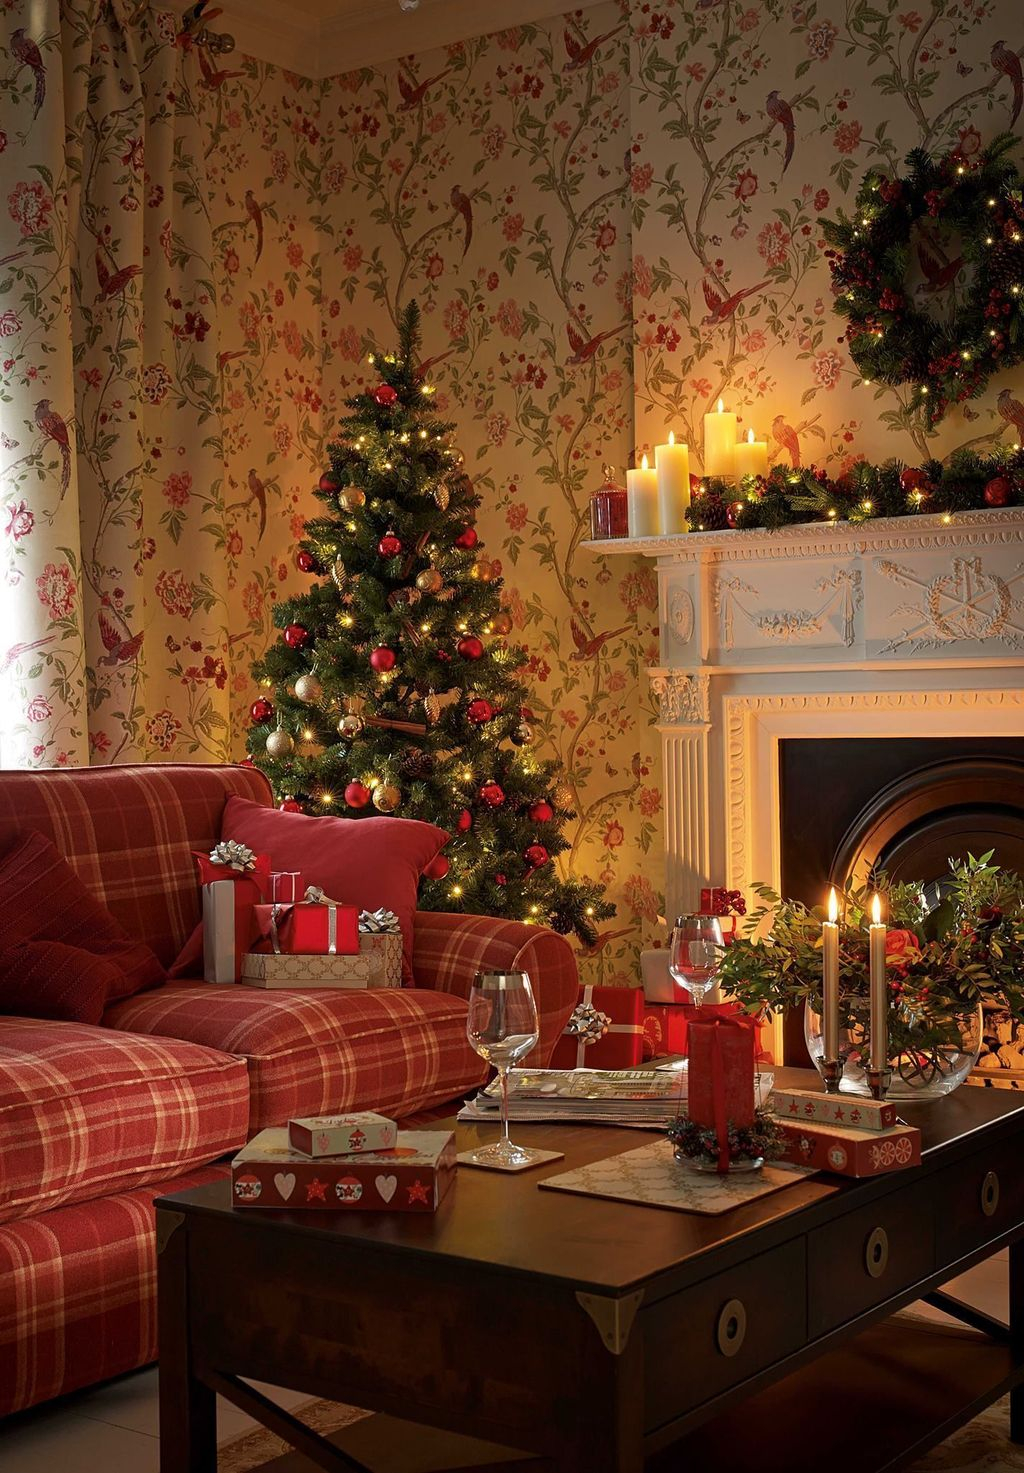 Wonderful Interior And Exterior Atmosphere Ideas For Christmas Décor To Copy30